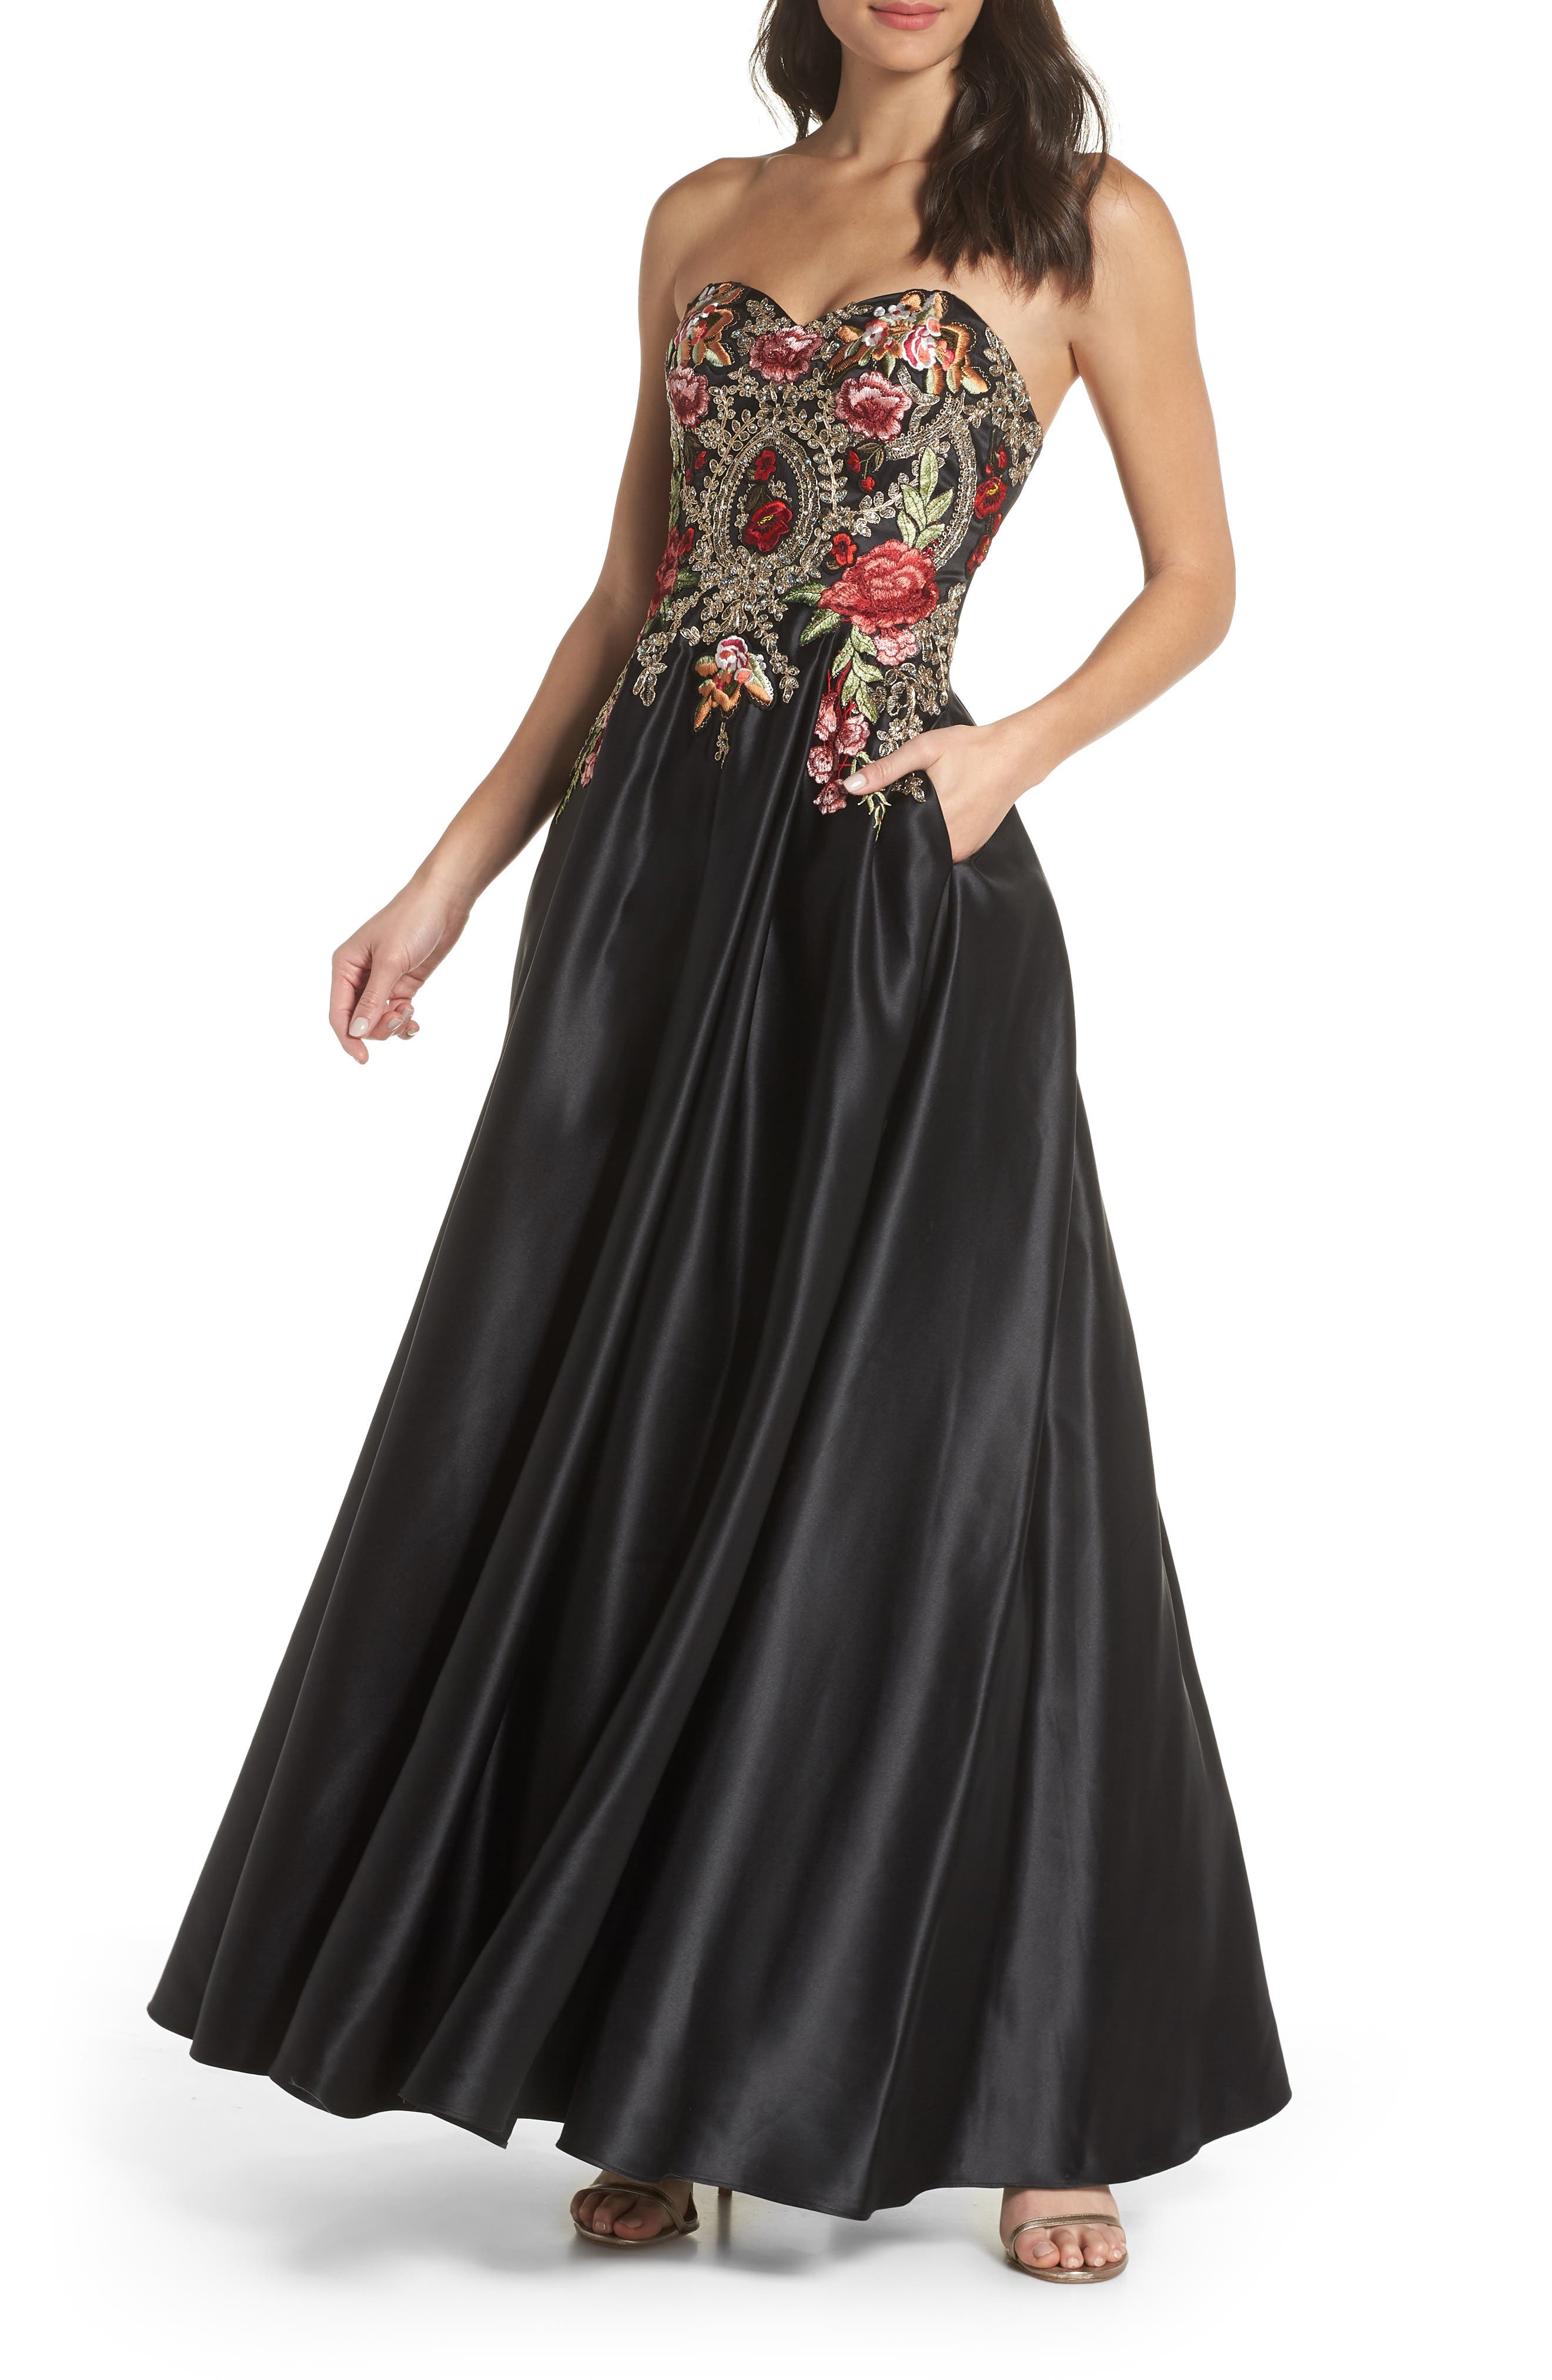 Blondie Nites Embroidered Applique Strapless Ballgown, Black